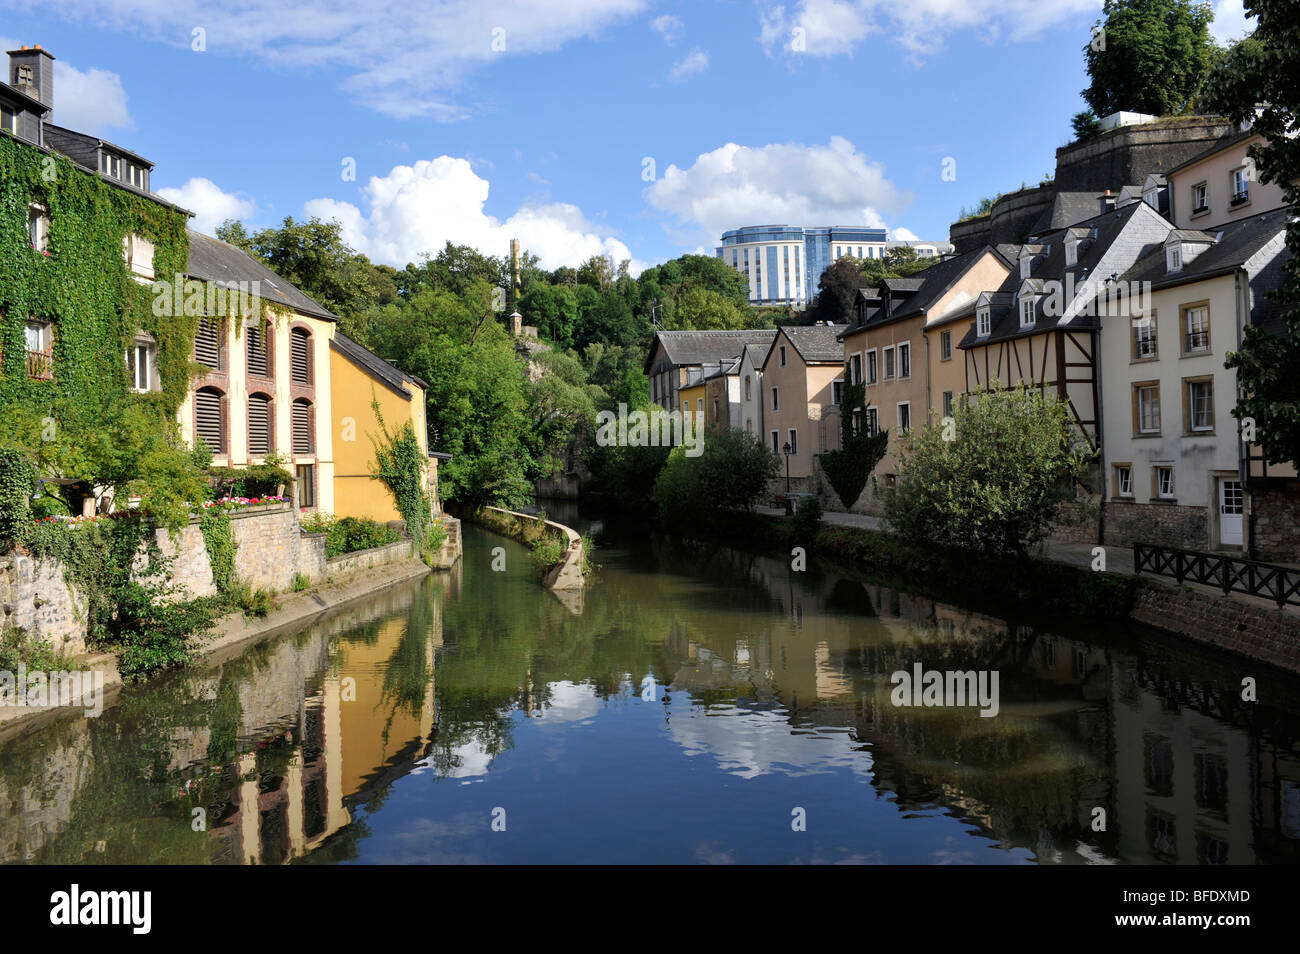 River Aizette flows through the Old Town, City of Luxembourg, Europe. - Stock Image